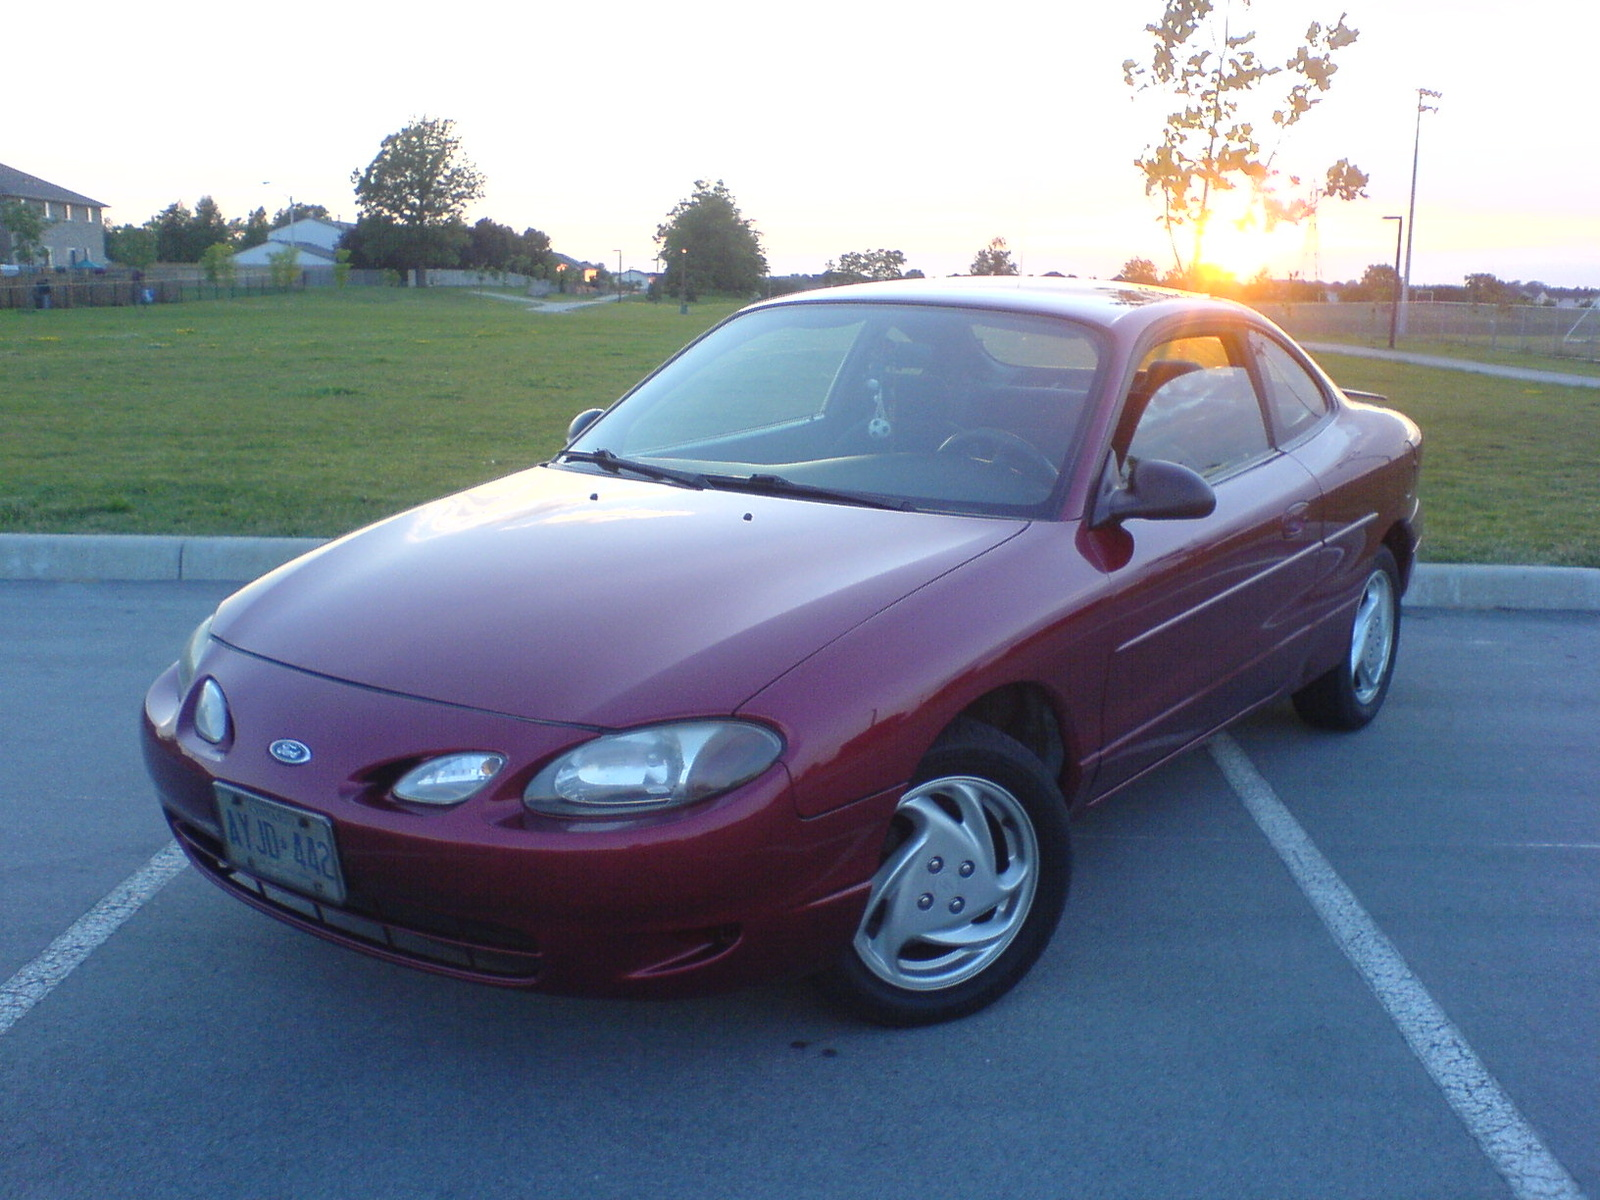 2000 Ford Escort ZX2 picture